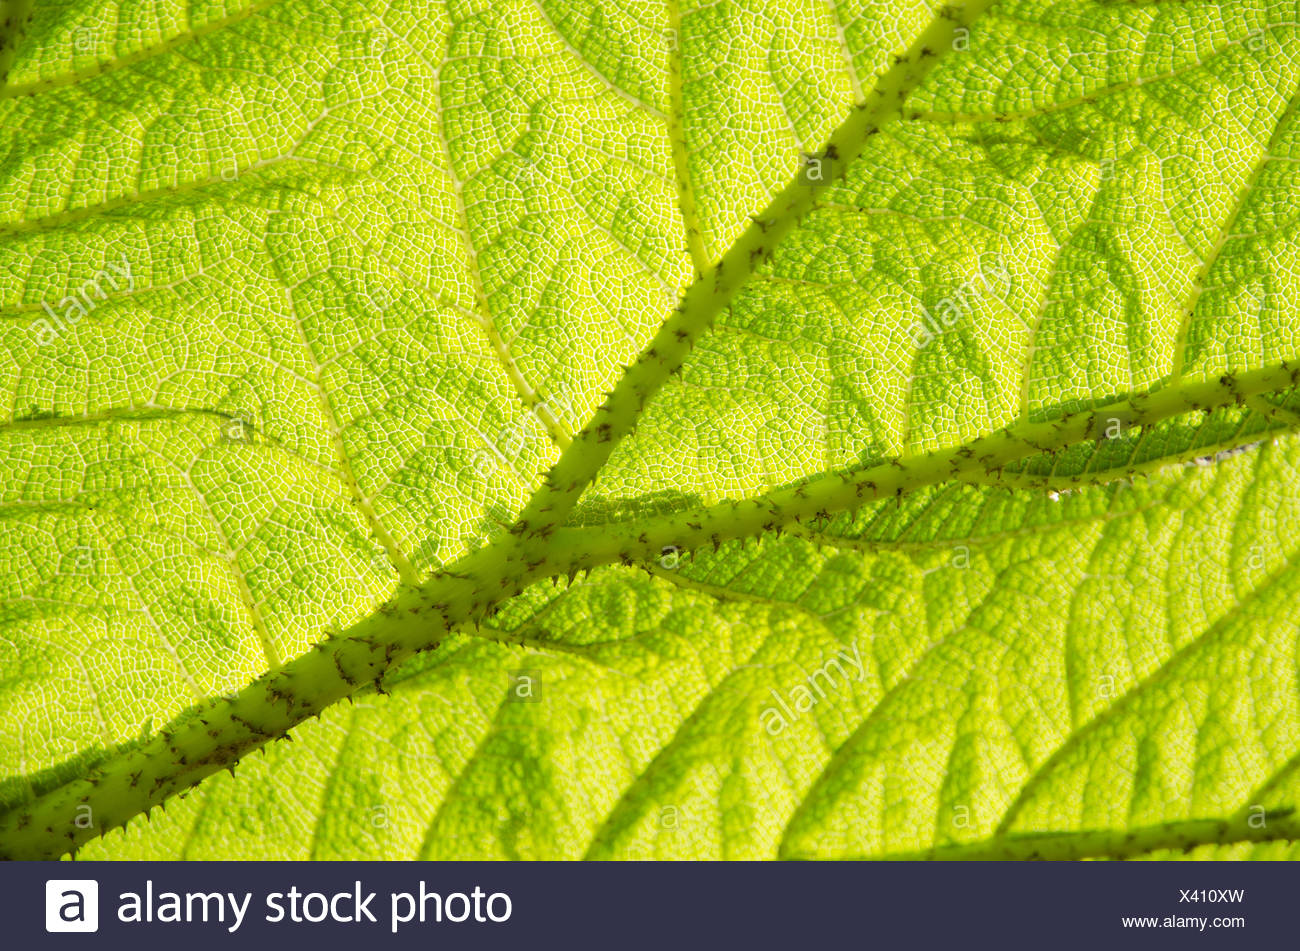 Gunnera-herbaceous flowering plants - Stock Image